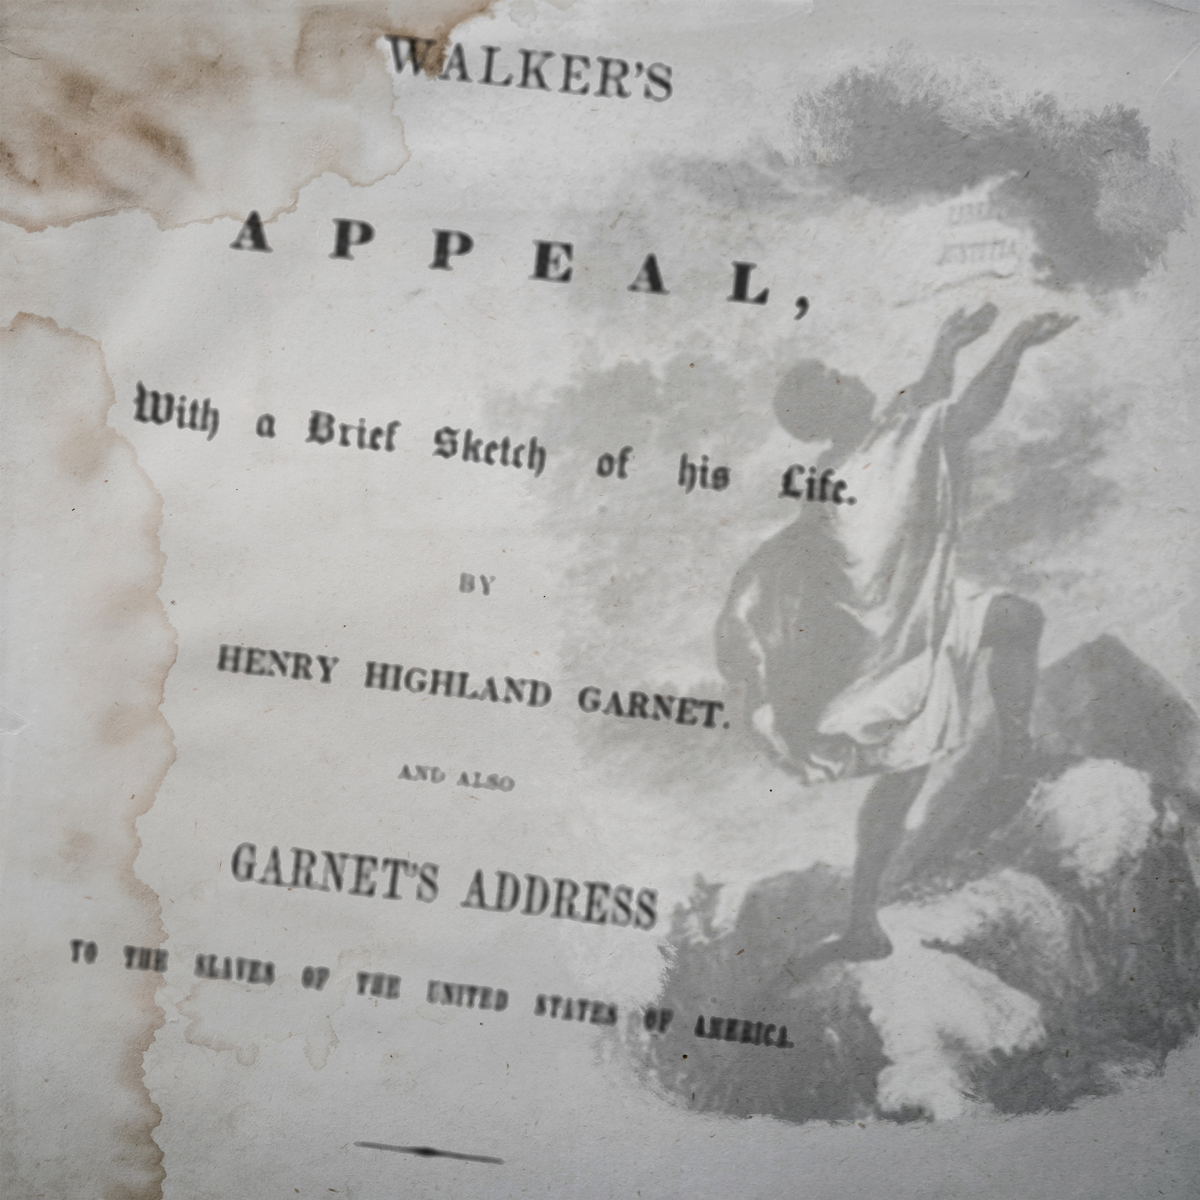 David Walker's Appeal opening page and image